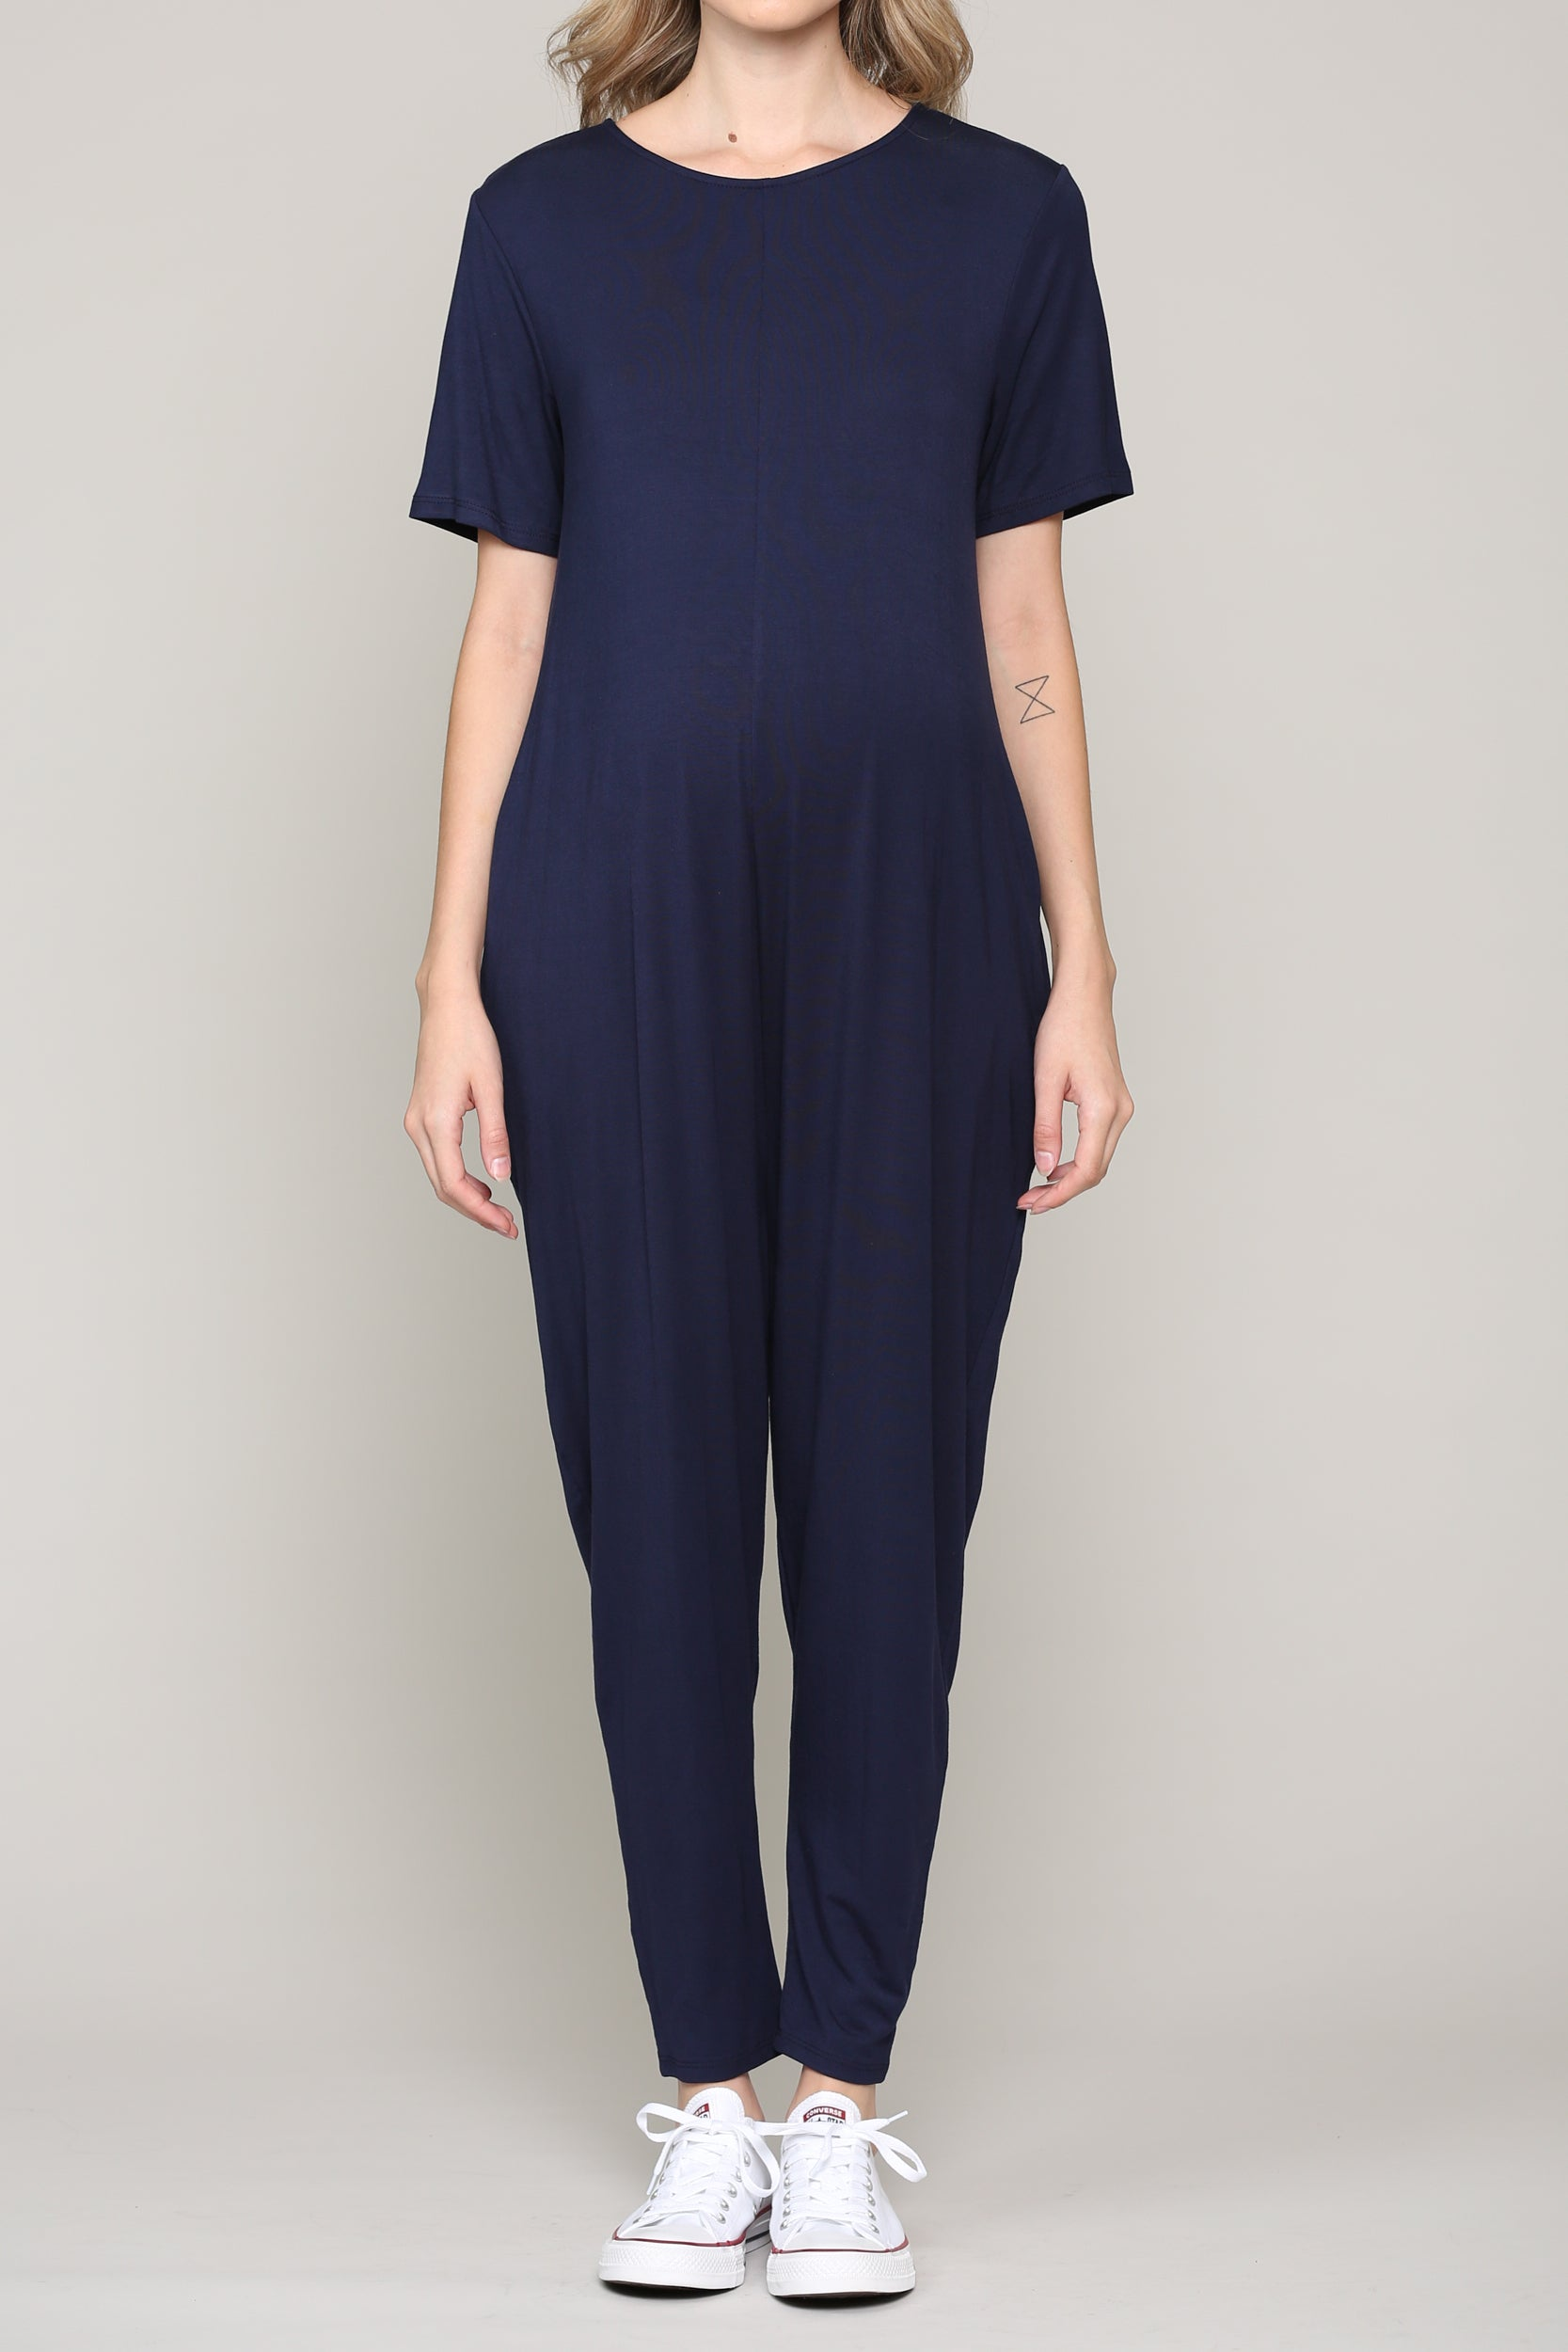 Round-Neck Short Sleeve Maternity Jumpsuit